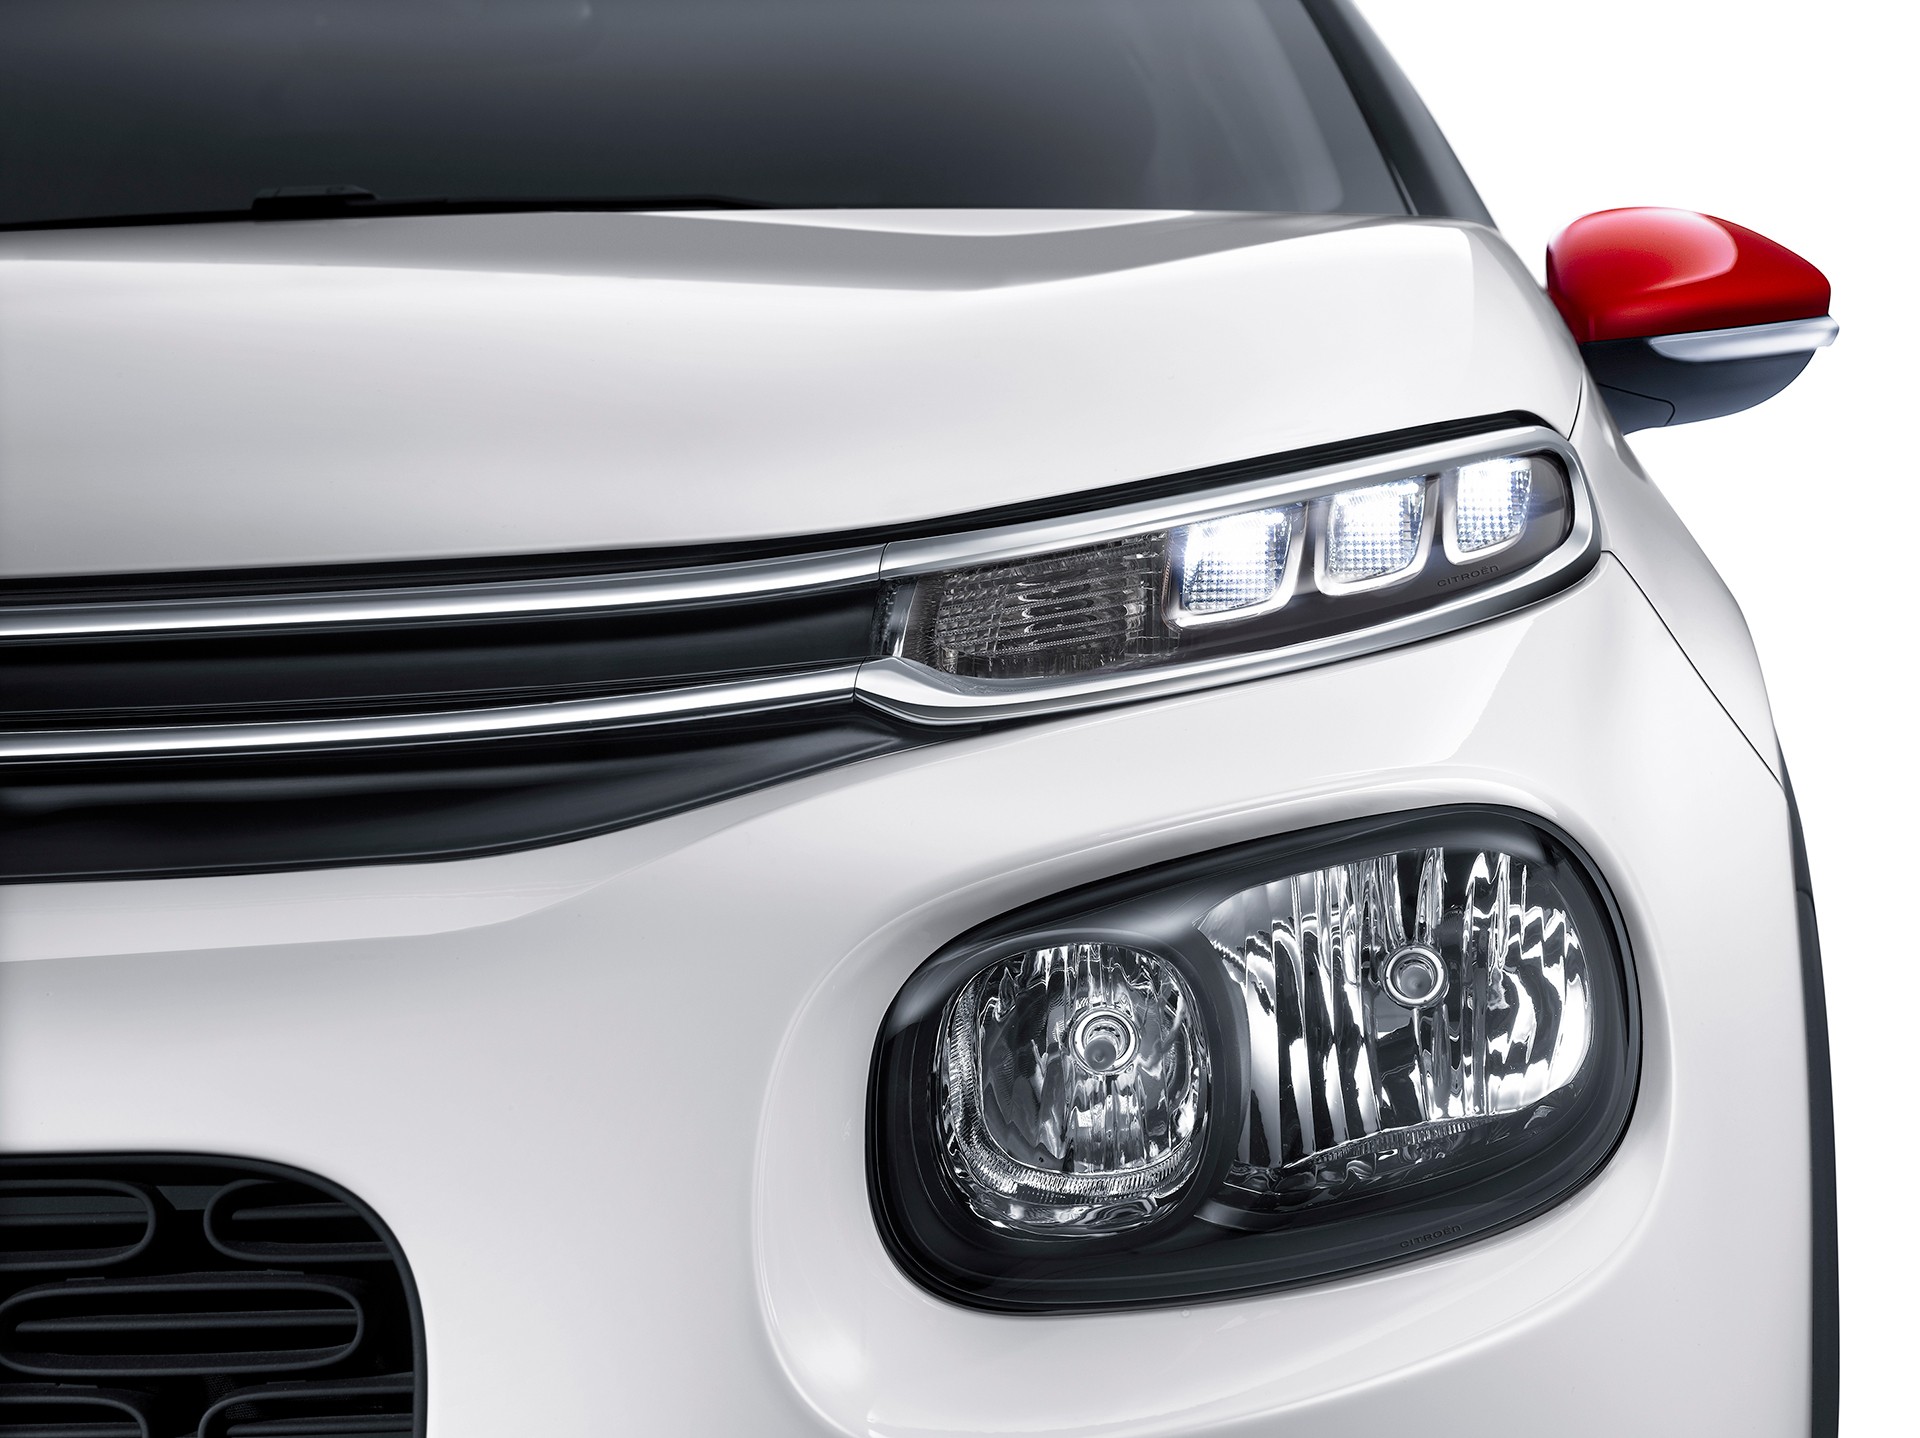 Citroen C3 2016 - front light / optique avant